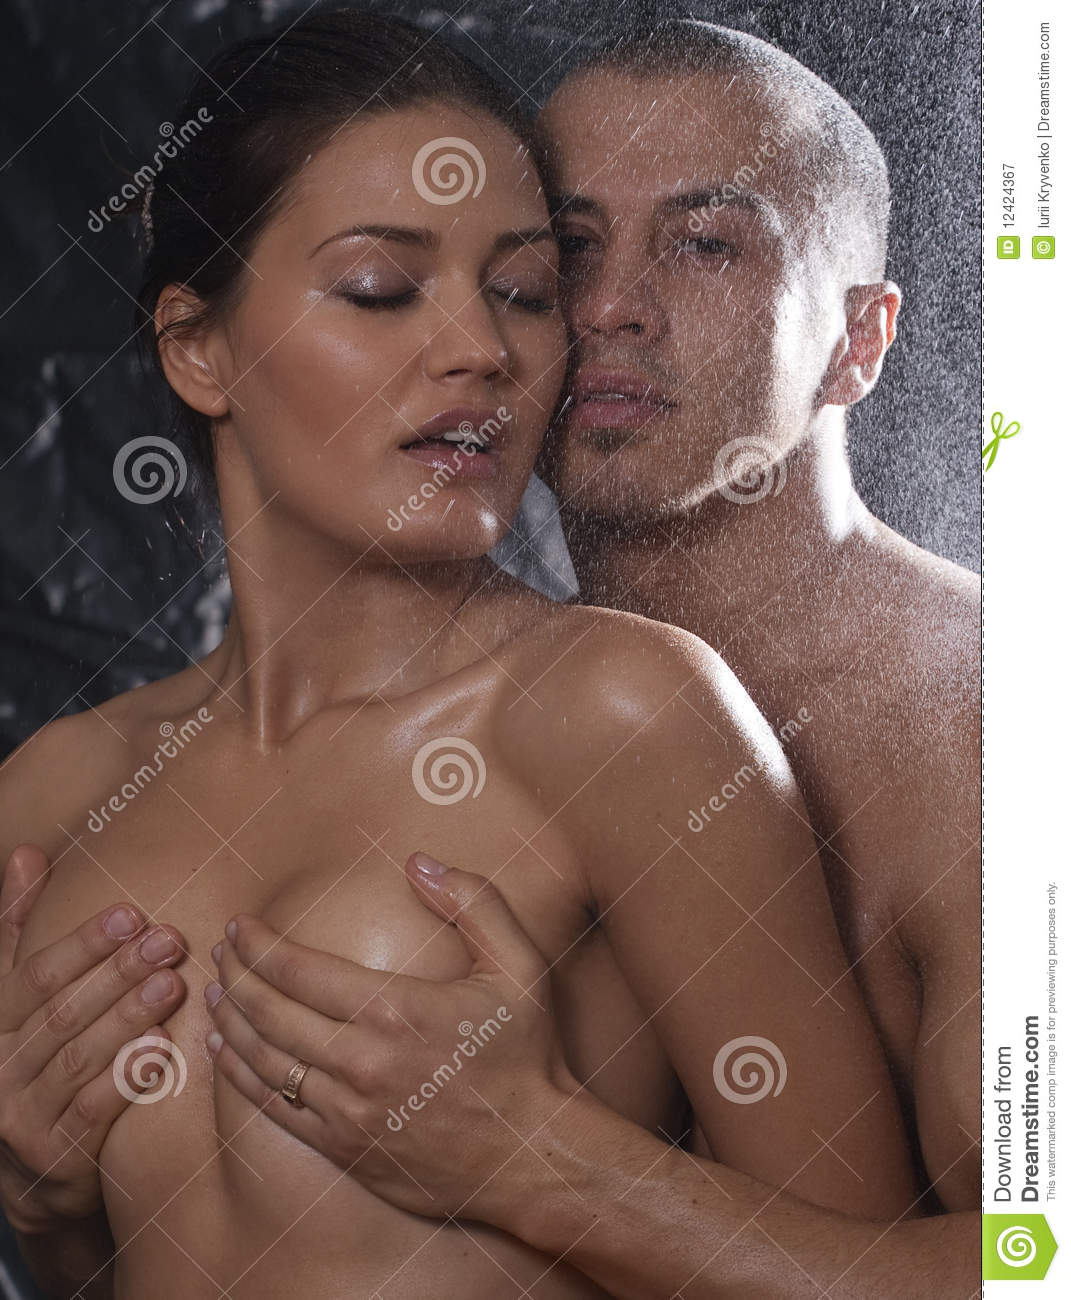 Women kissing breasts pictures